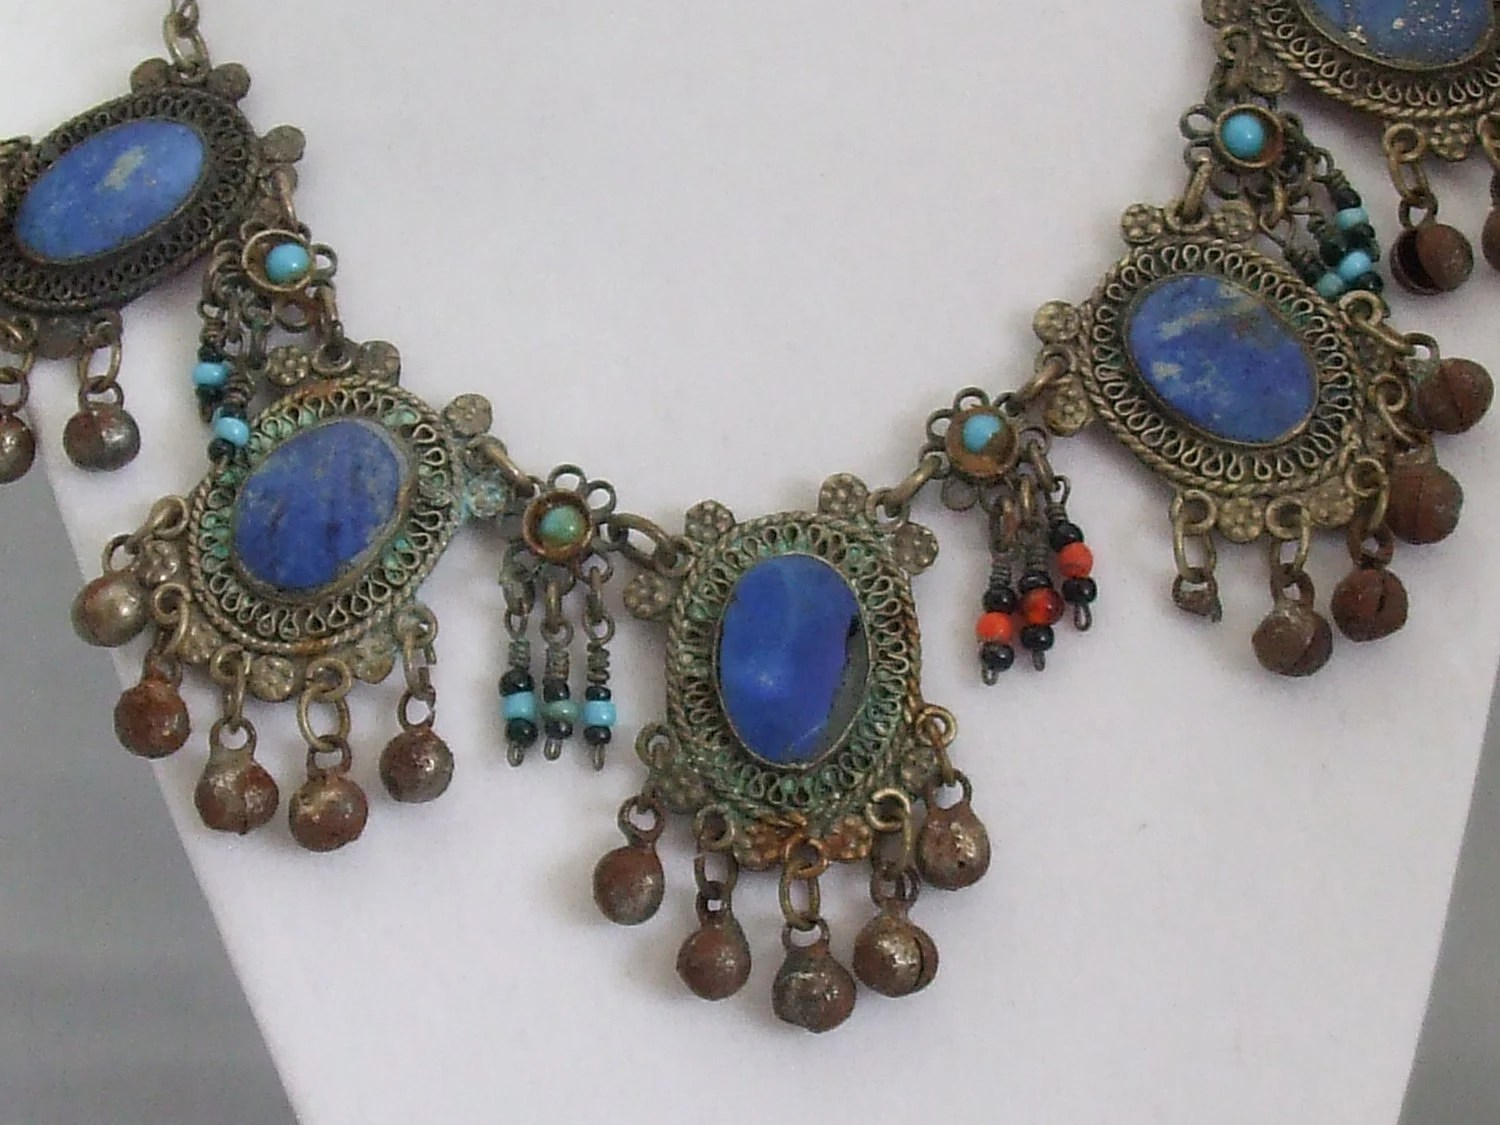 Primitive Afghani Tribal Necklace approximately 75-100 years old